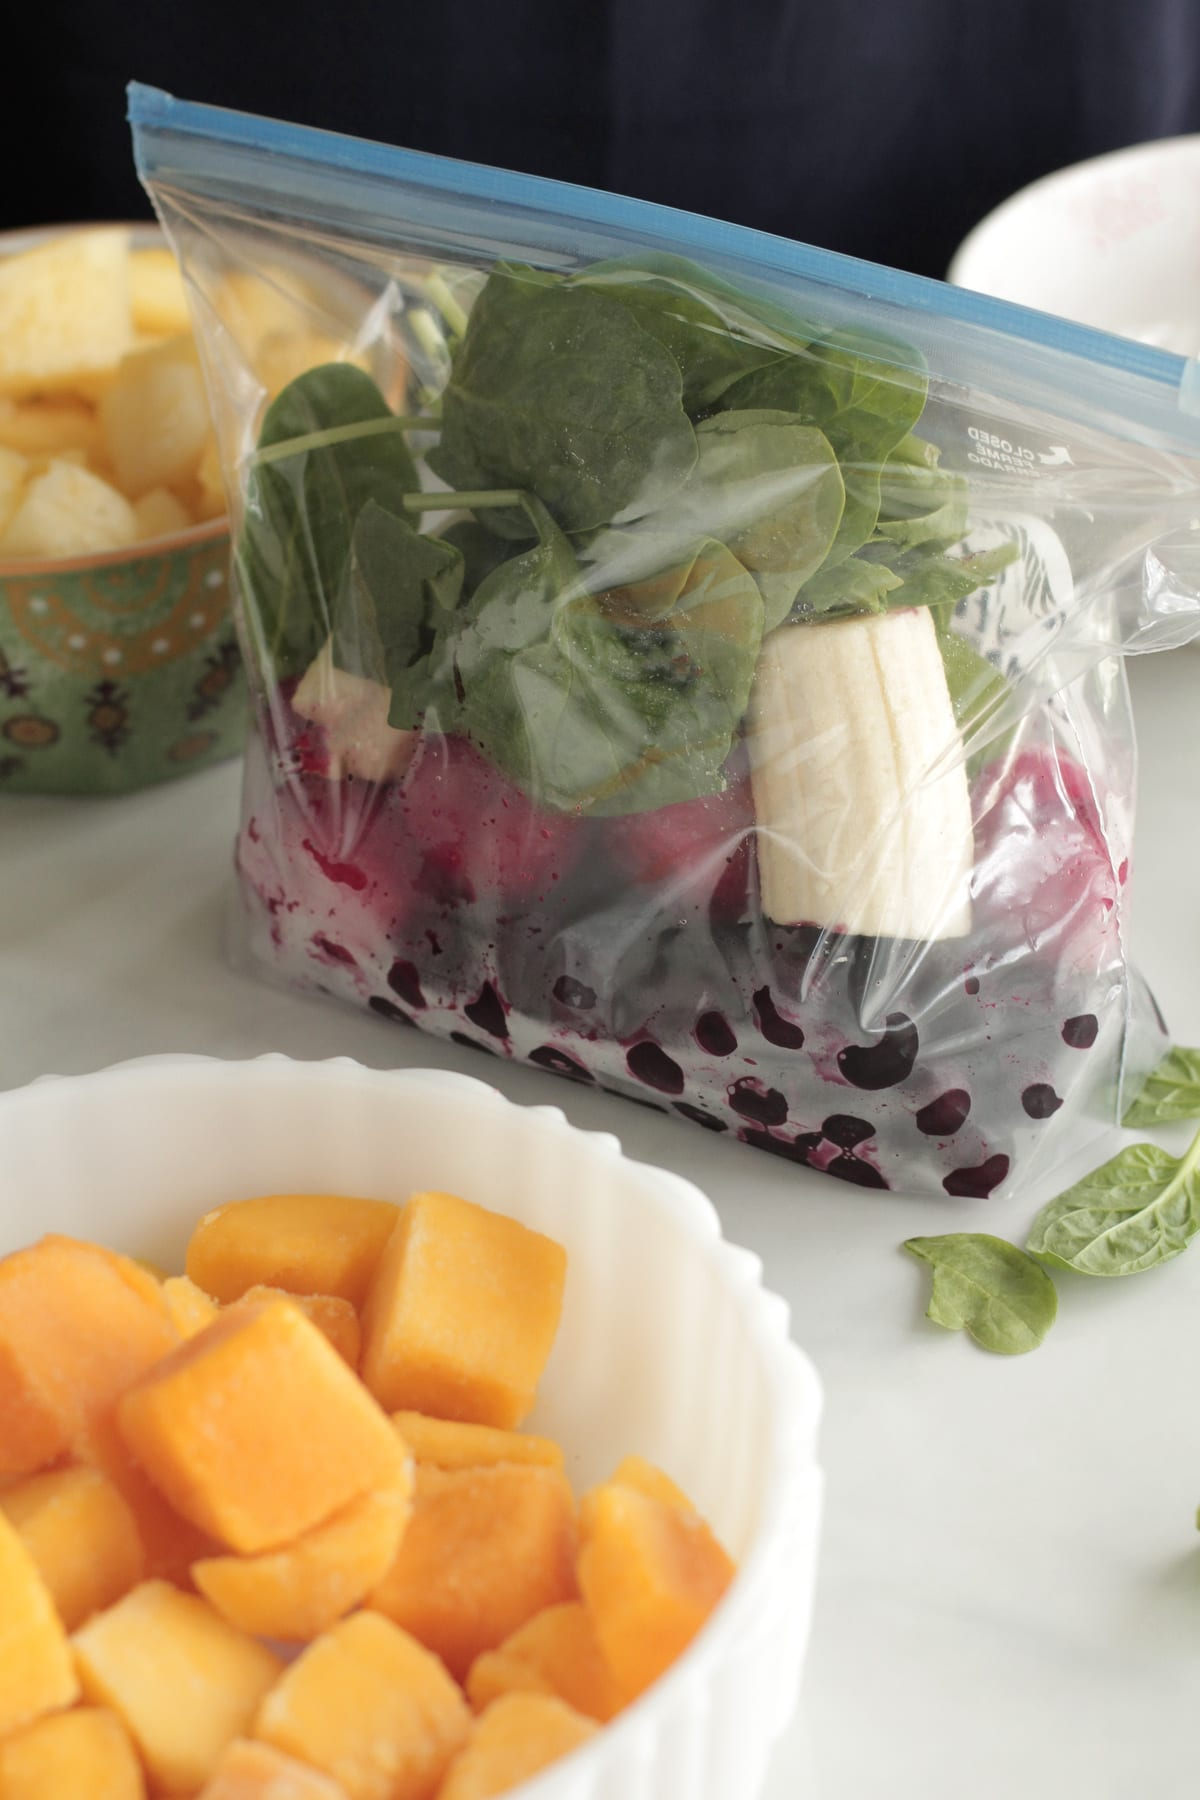 Diy freezer smoothie packs 5 recipes to get you started live simply diy freezer smoothie packs and smoothie recipes save money and time with homemade freezer packs forumfinder Choice Image